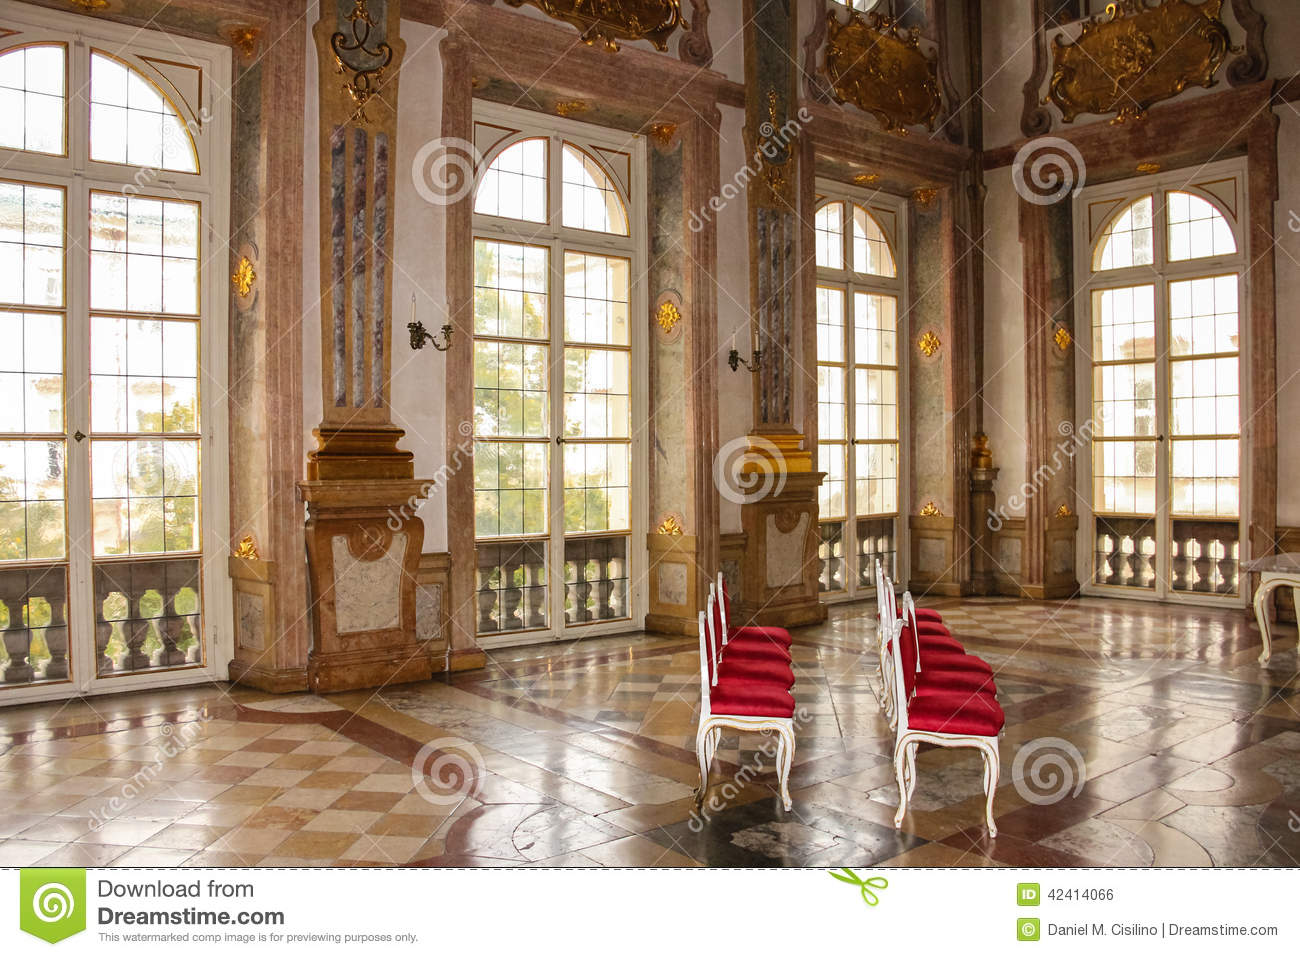 67936 Architectural Stock Vector Illustration And Royalty